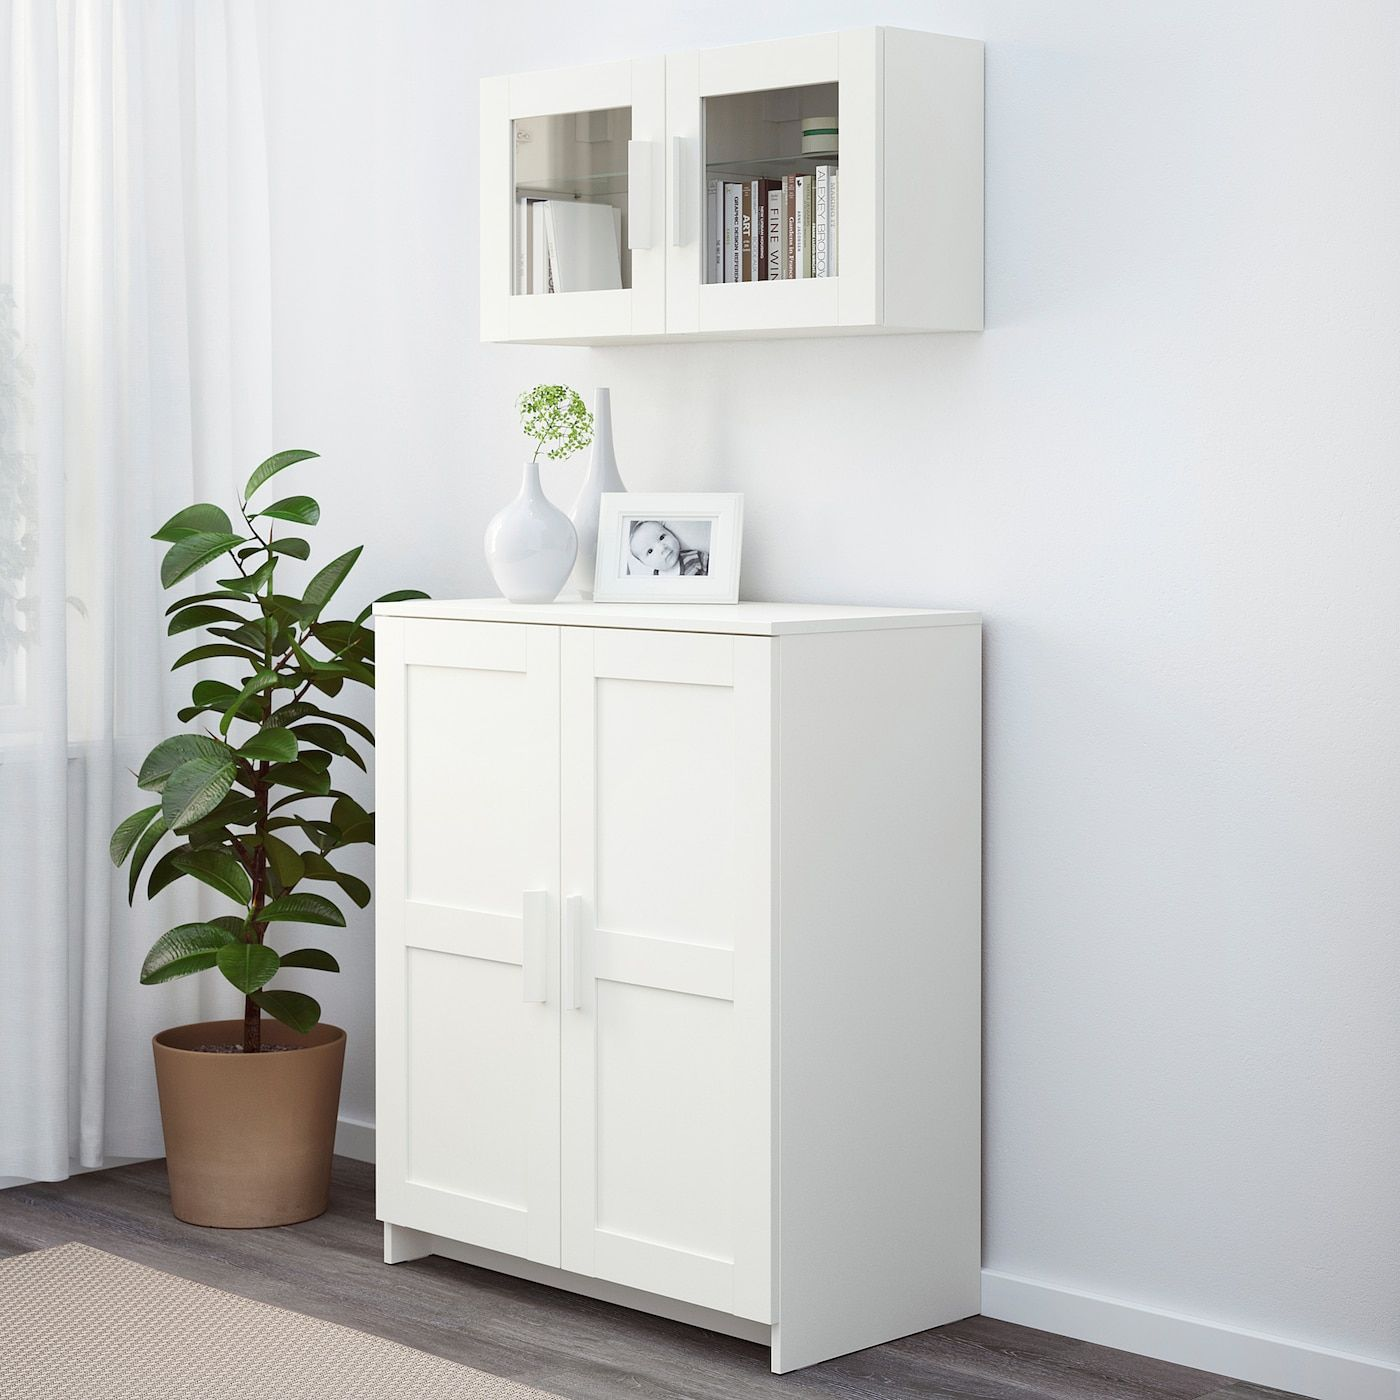 Brimnes Cabinet With Doors White 303 4x373 8